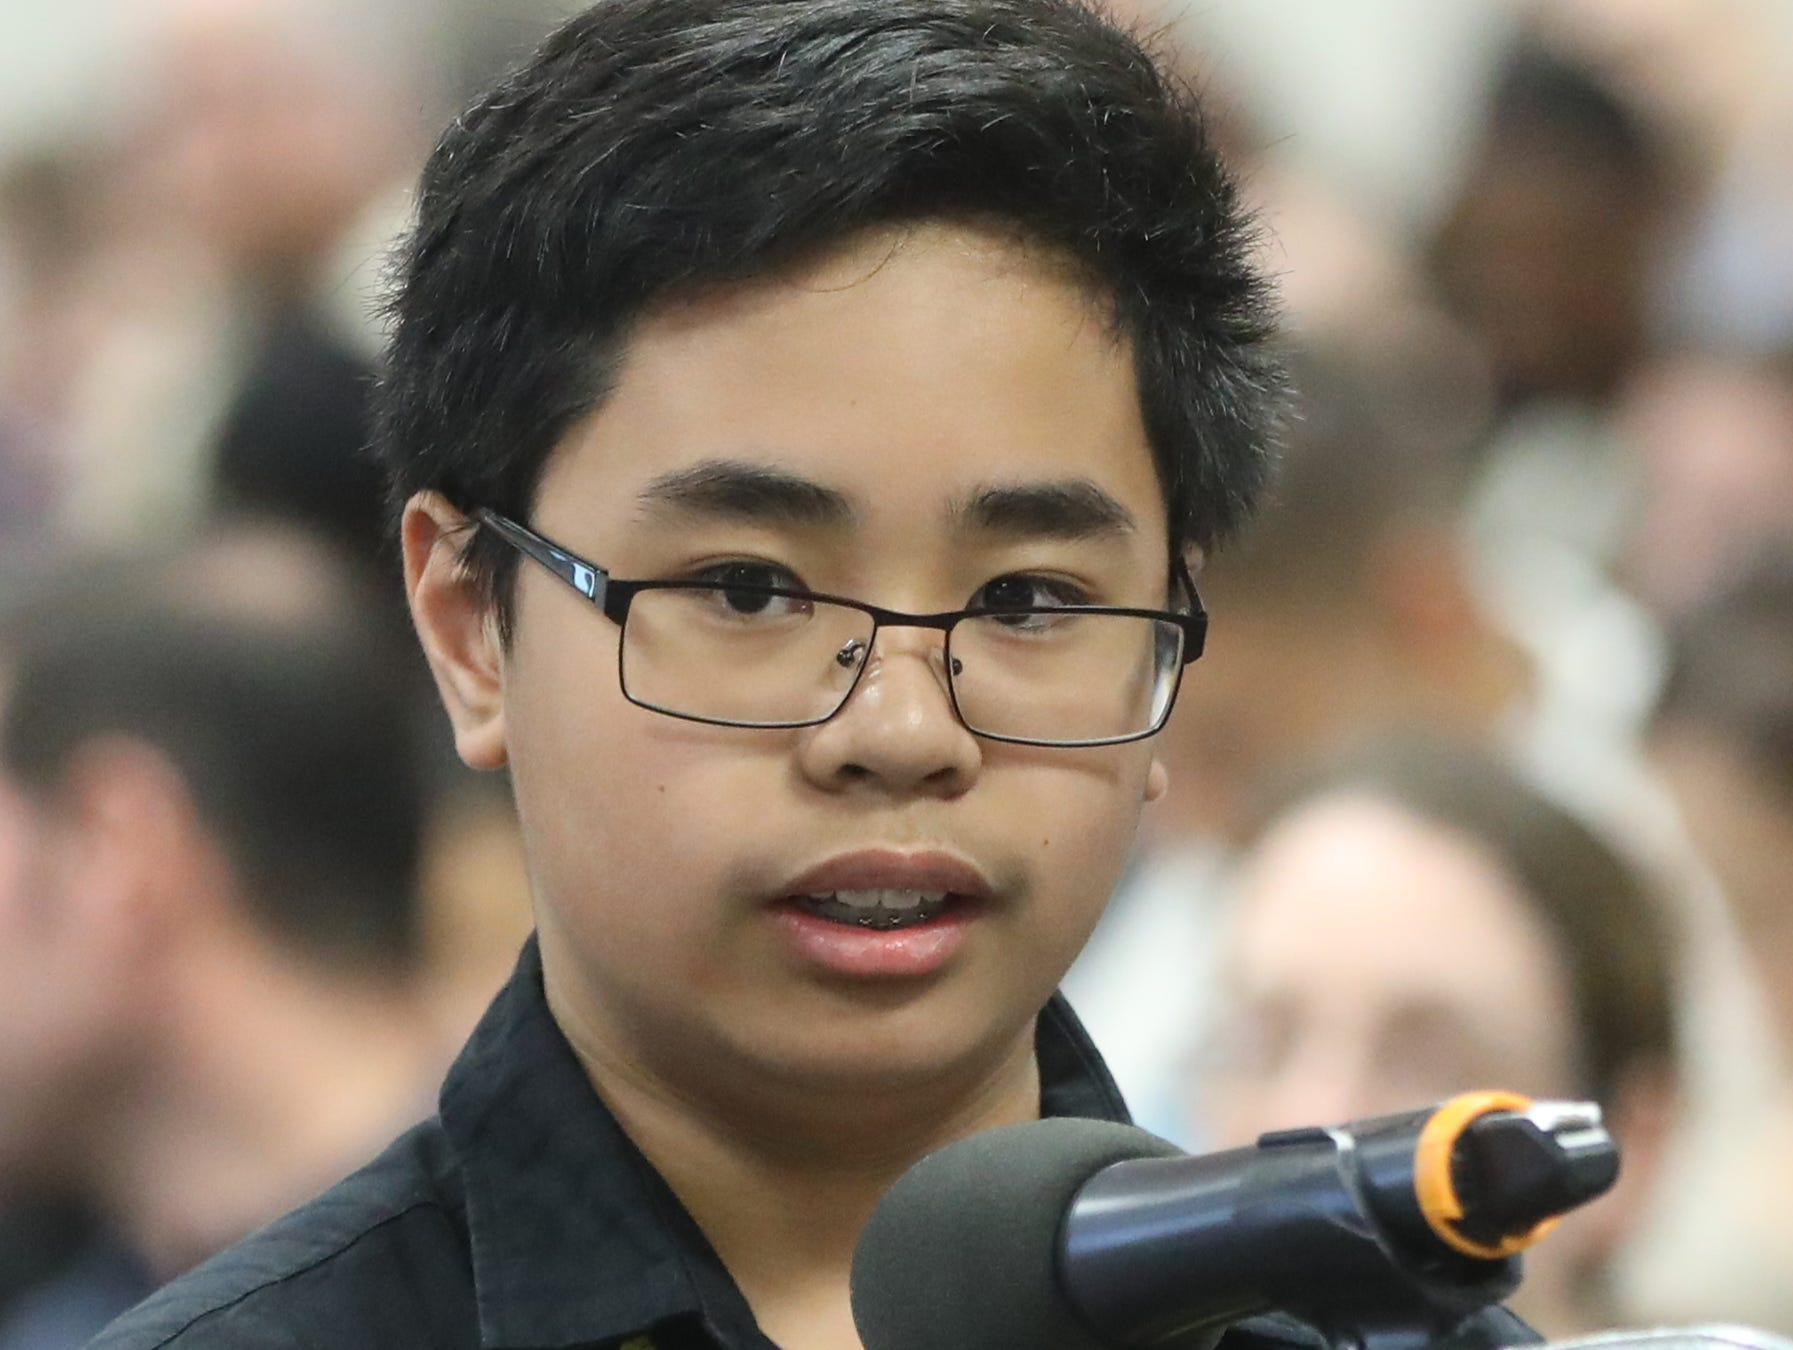 Matthew Cancio, of Norwood, competes in the first round of the 2019 North Jersey Spelling Bee, in Paramus. Thursday, March 14, 2019